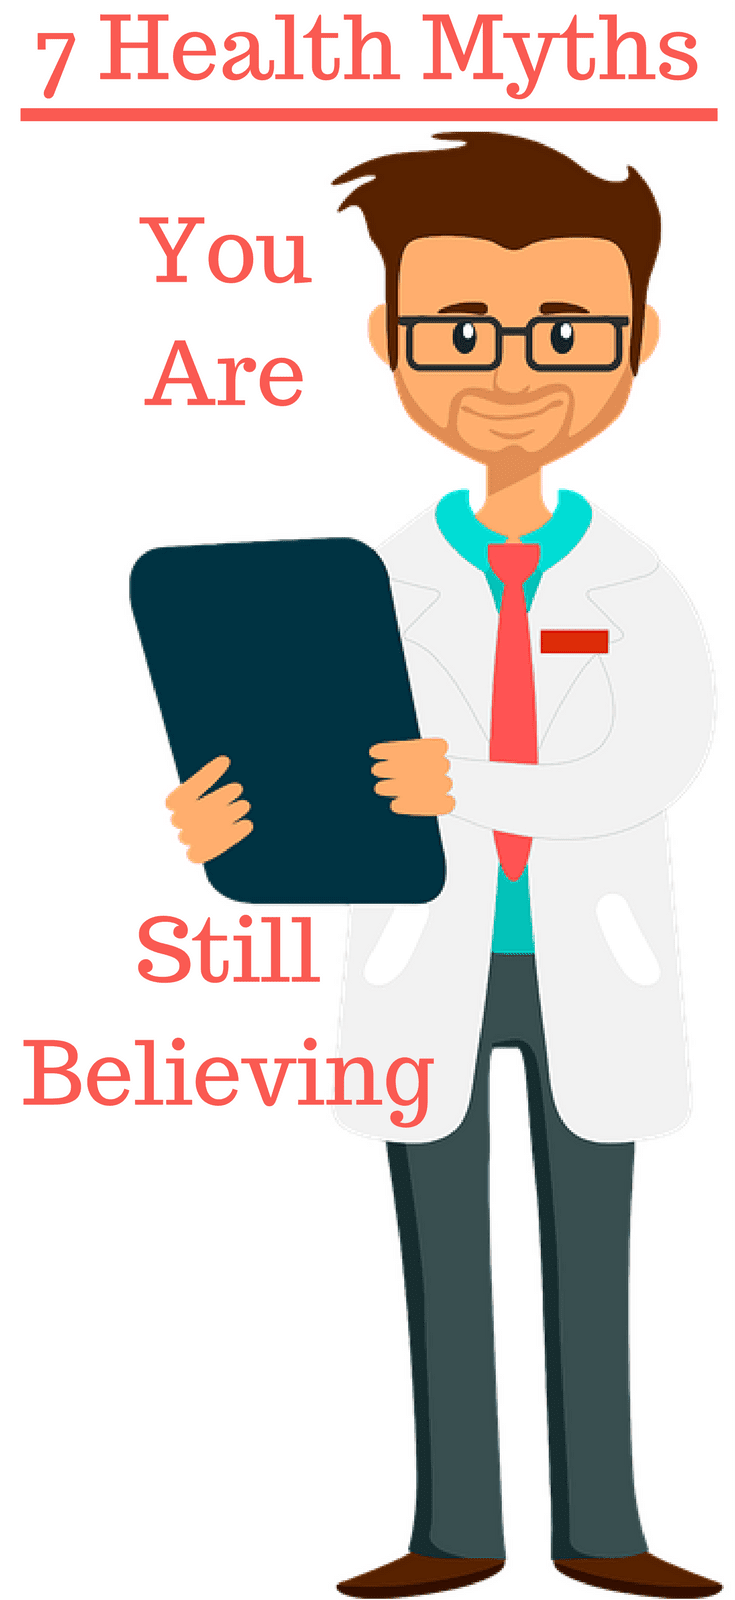 7 Health Myths That You Are Still Believing (But You Shouldn't)